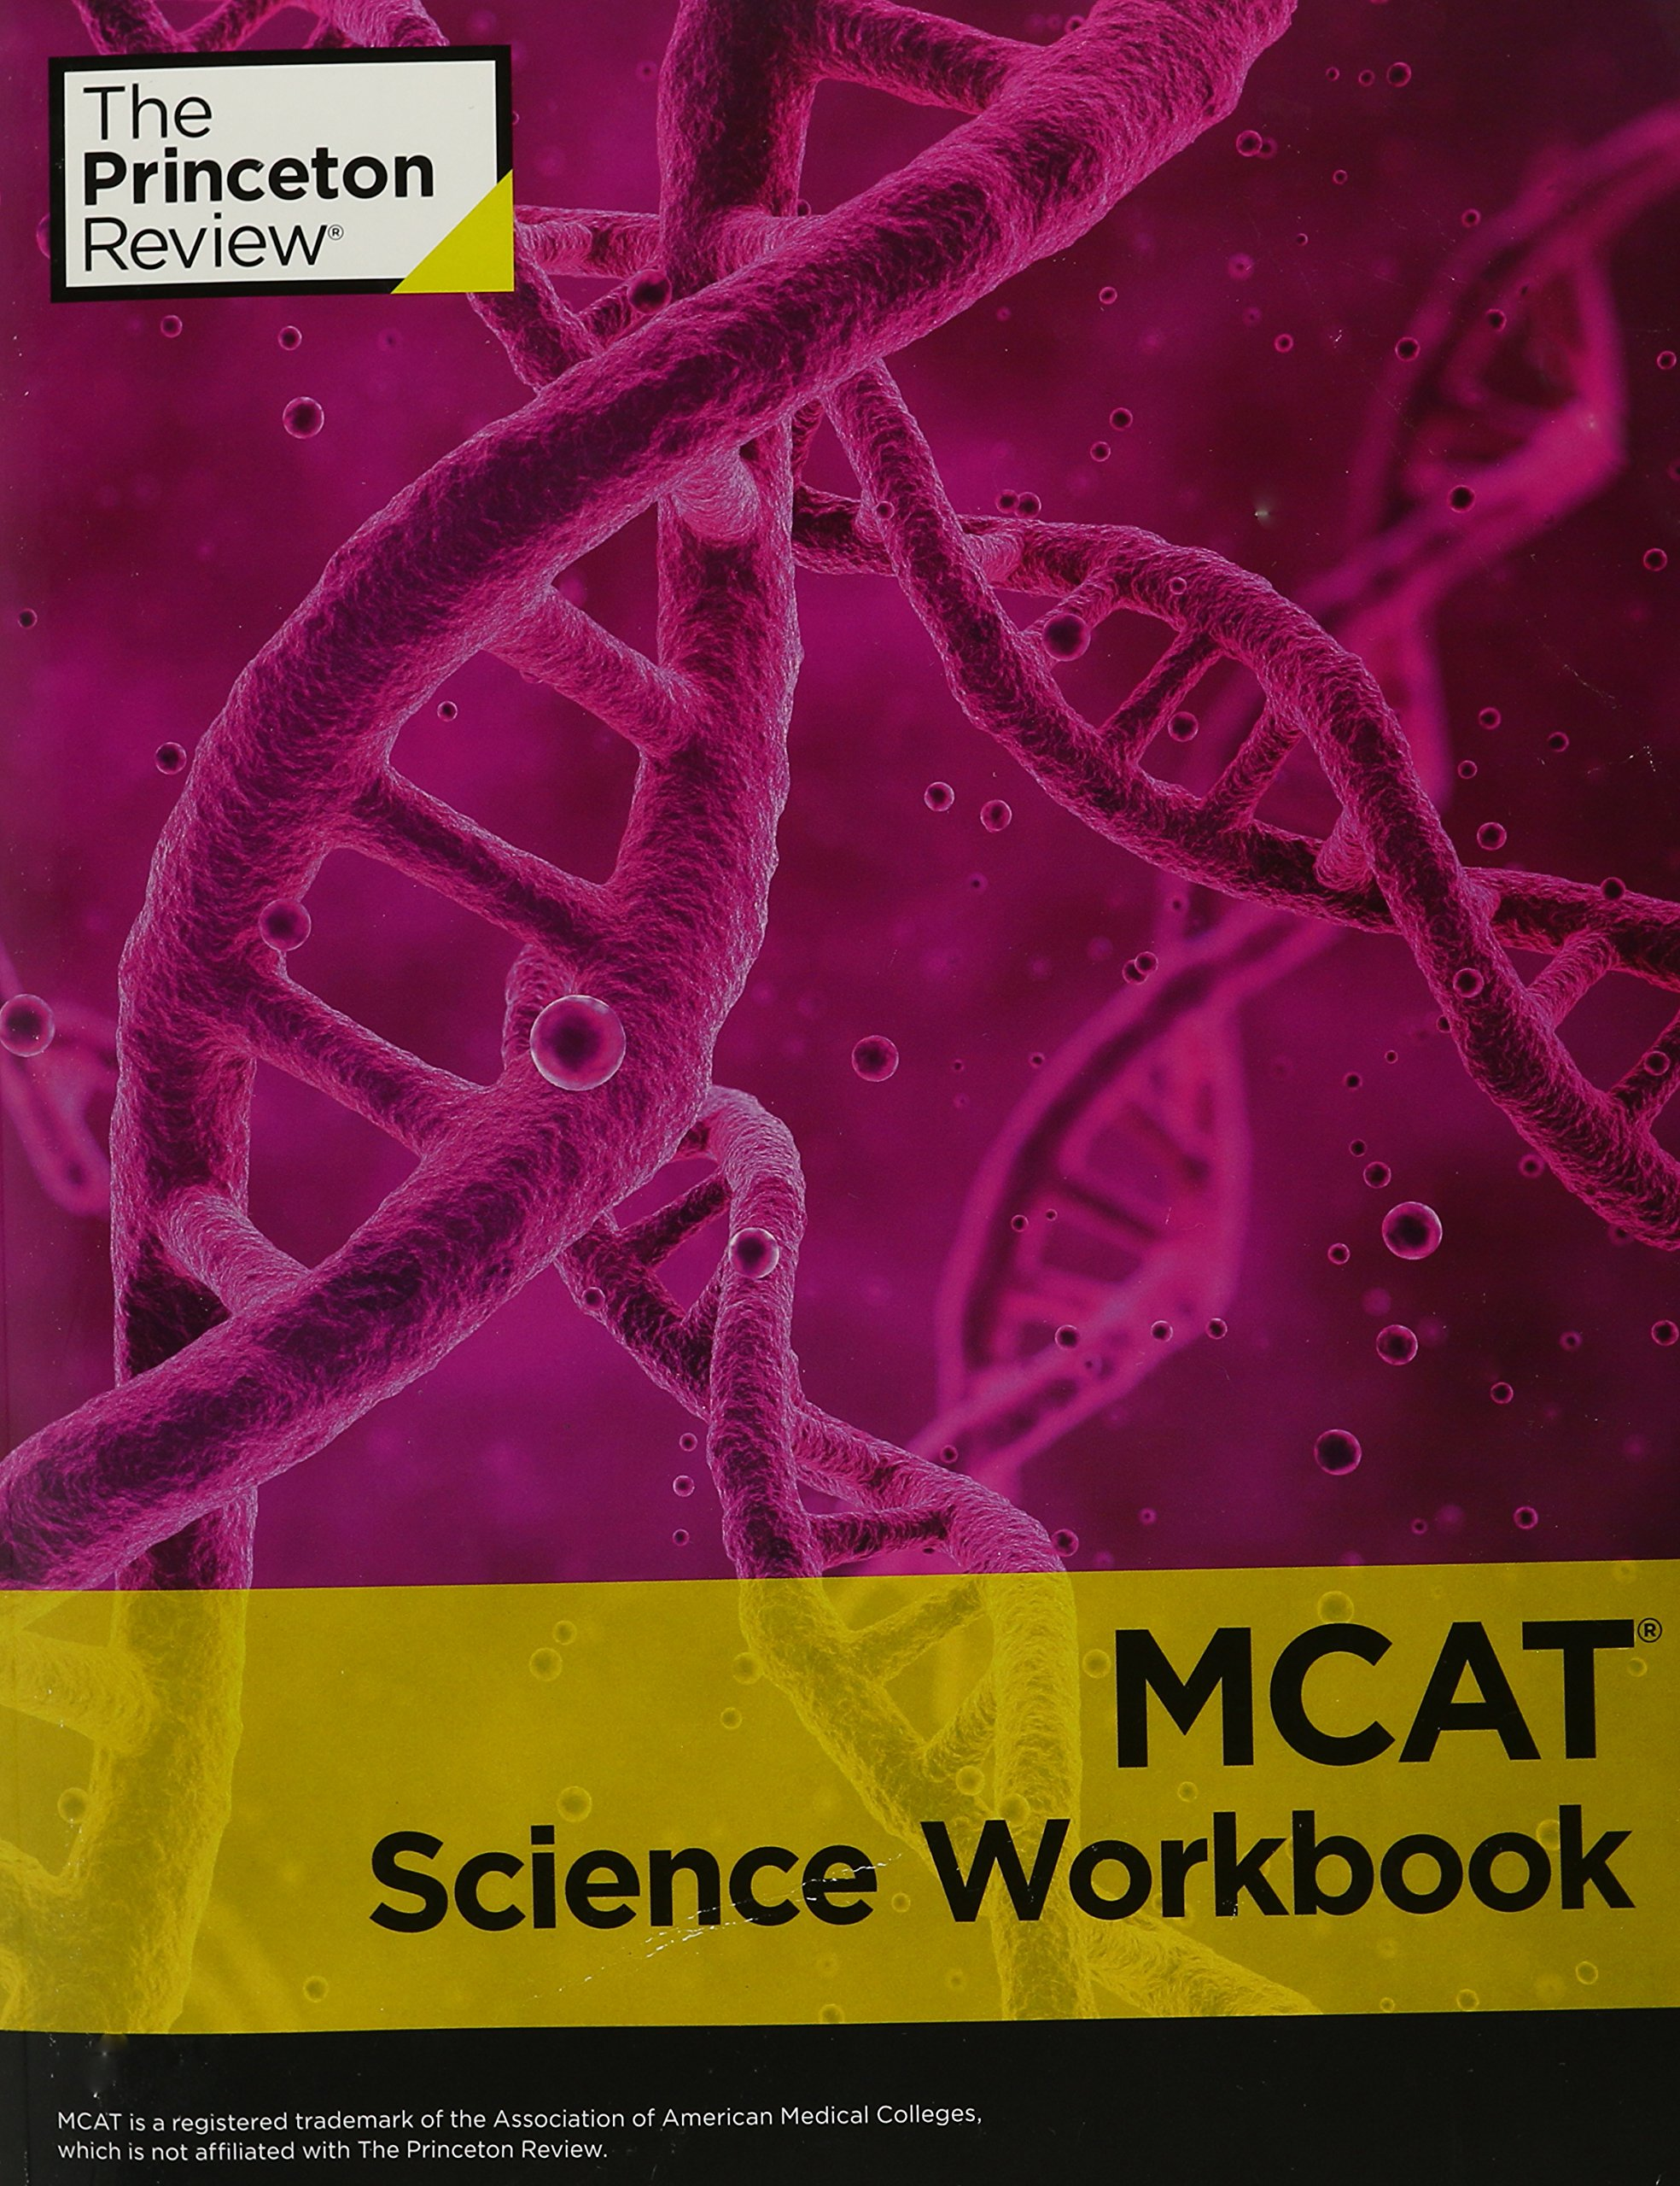 MCAT Science Workbook: The Princeton Review: 4913993110792